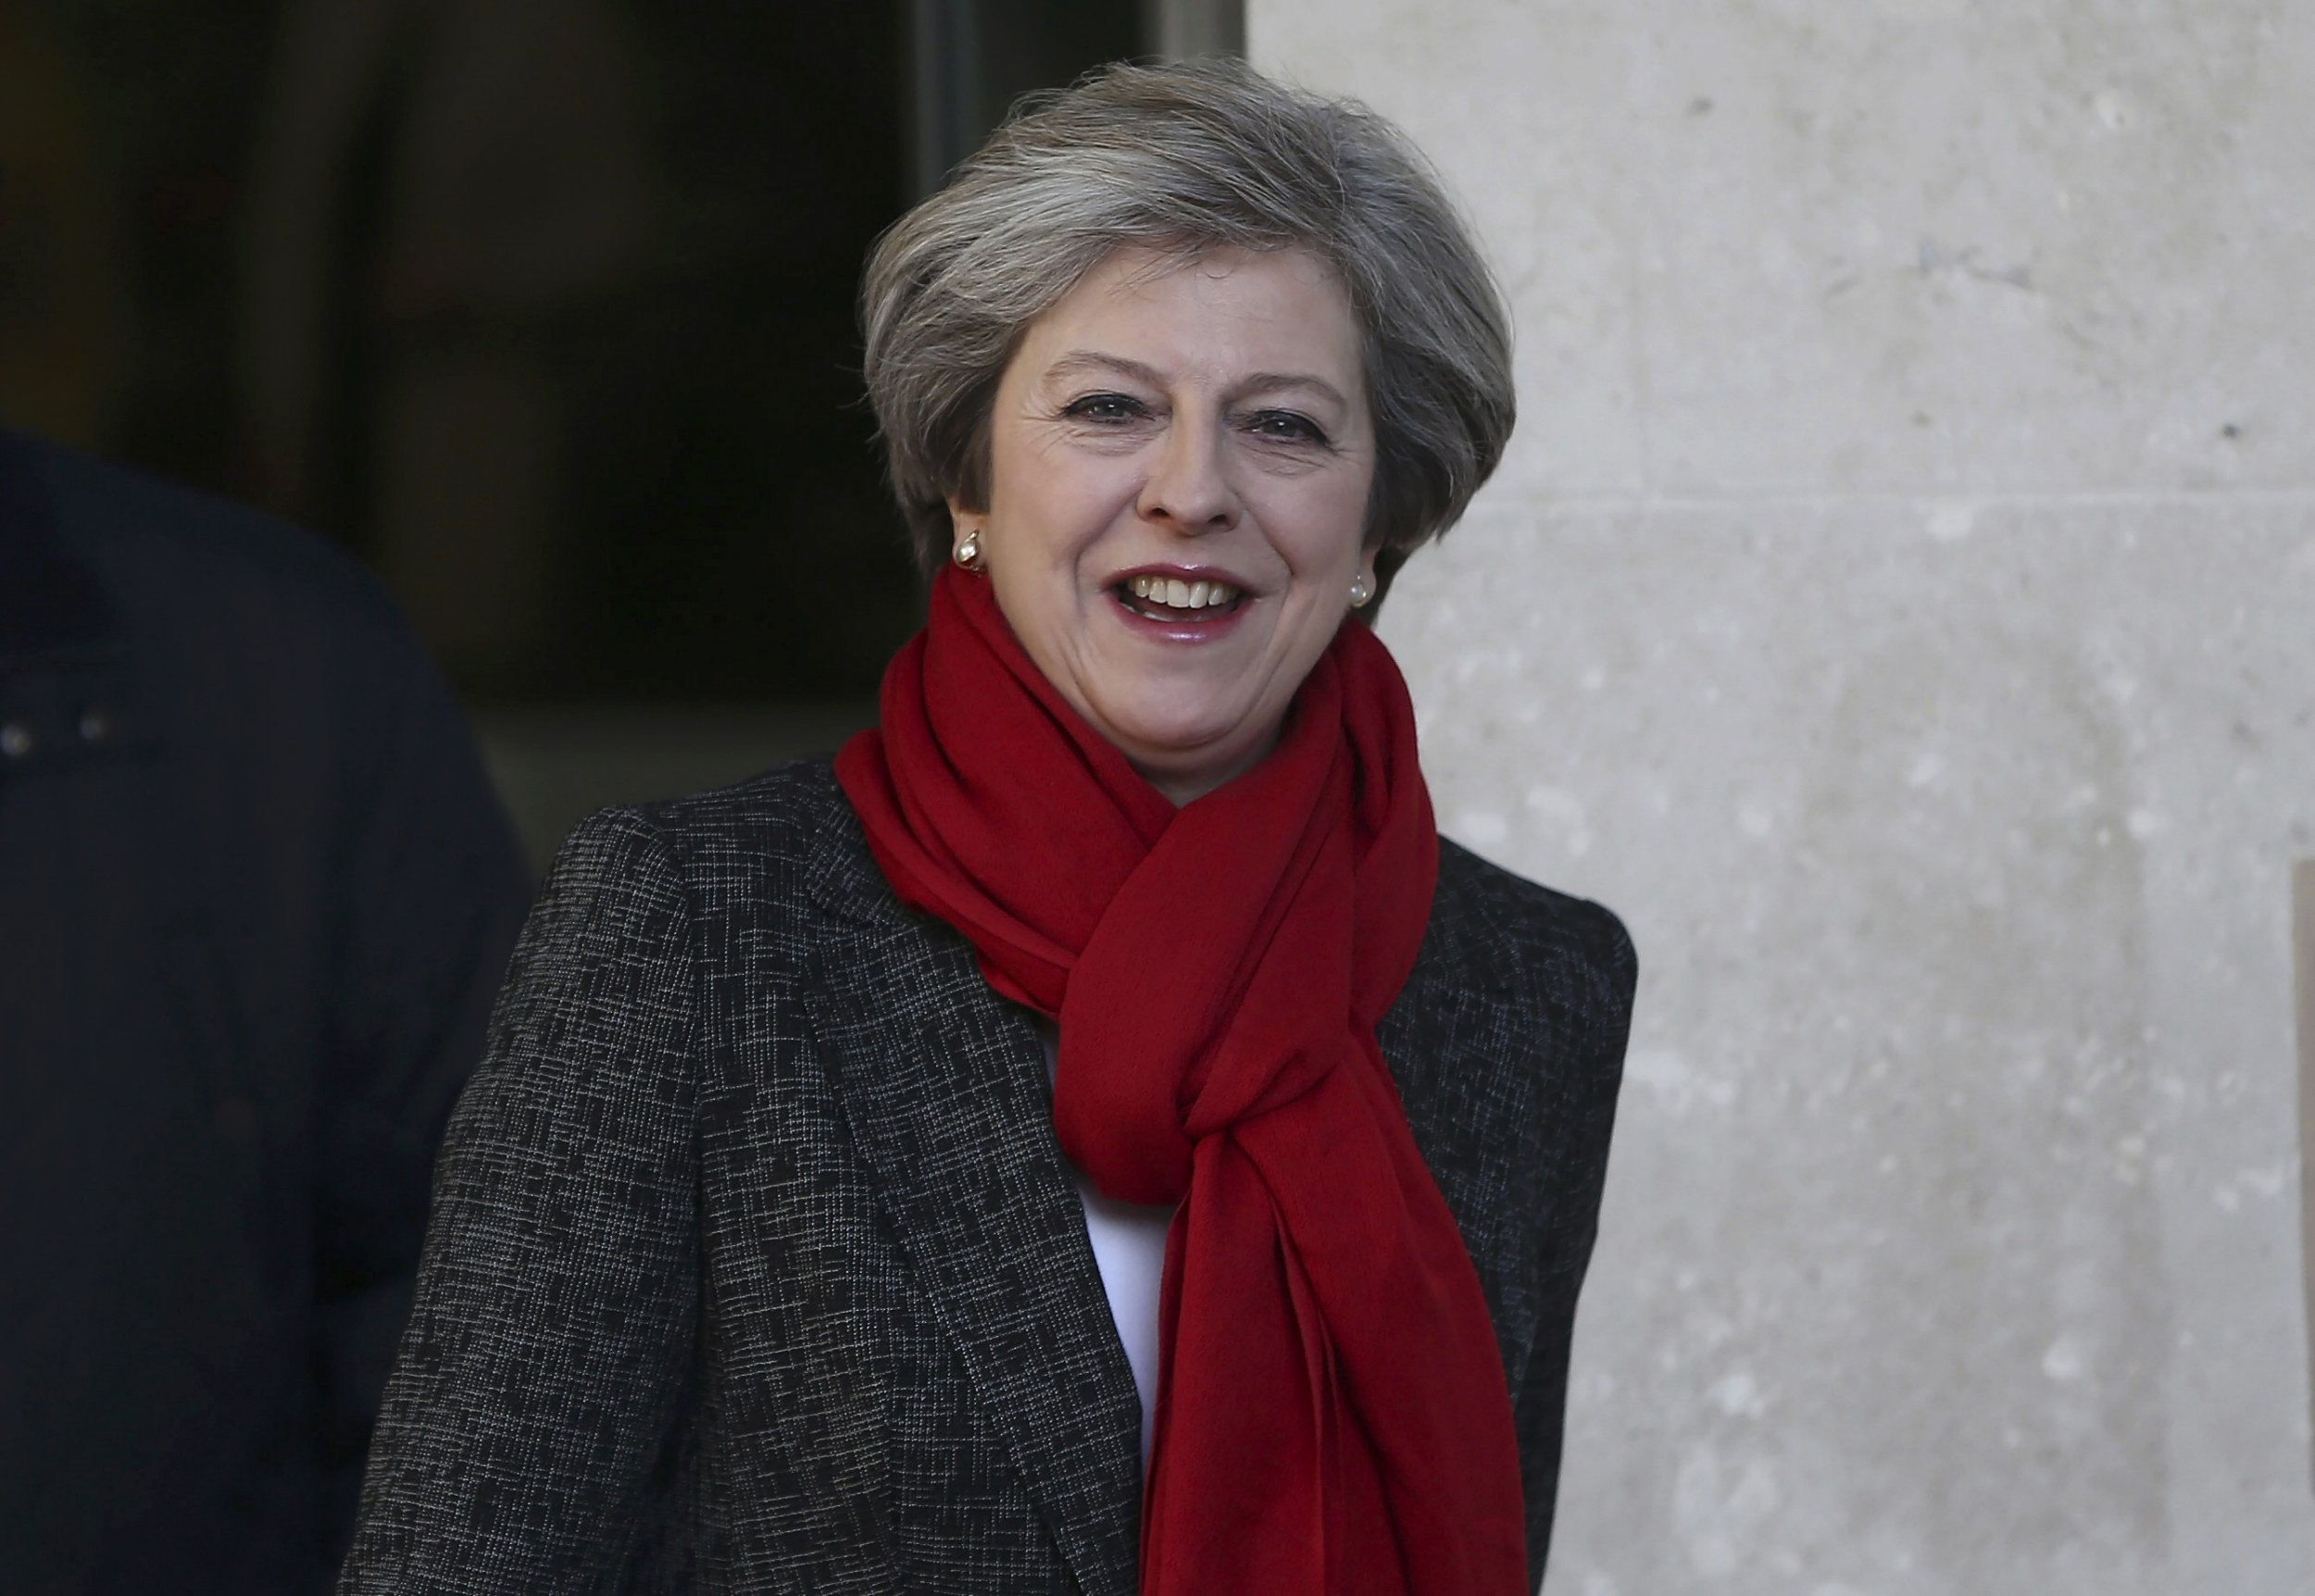 Theresa May is preparing to lose battle at Supreme Court